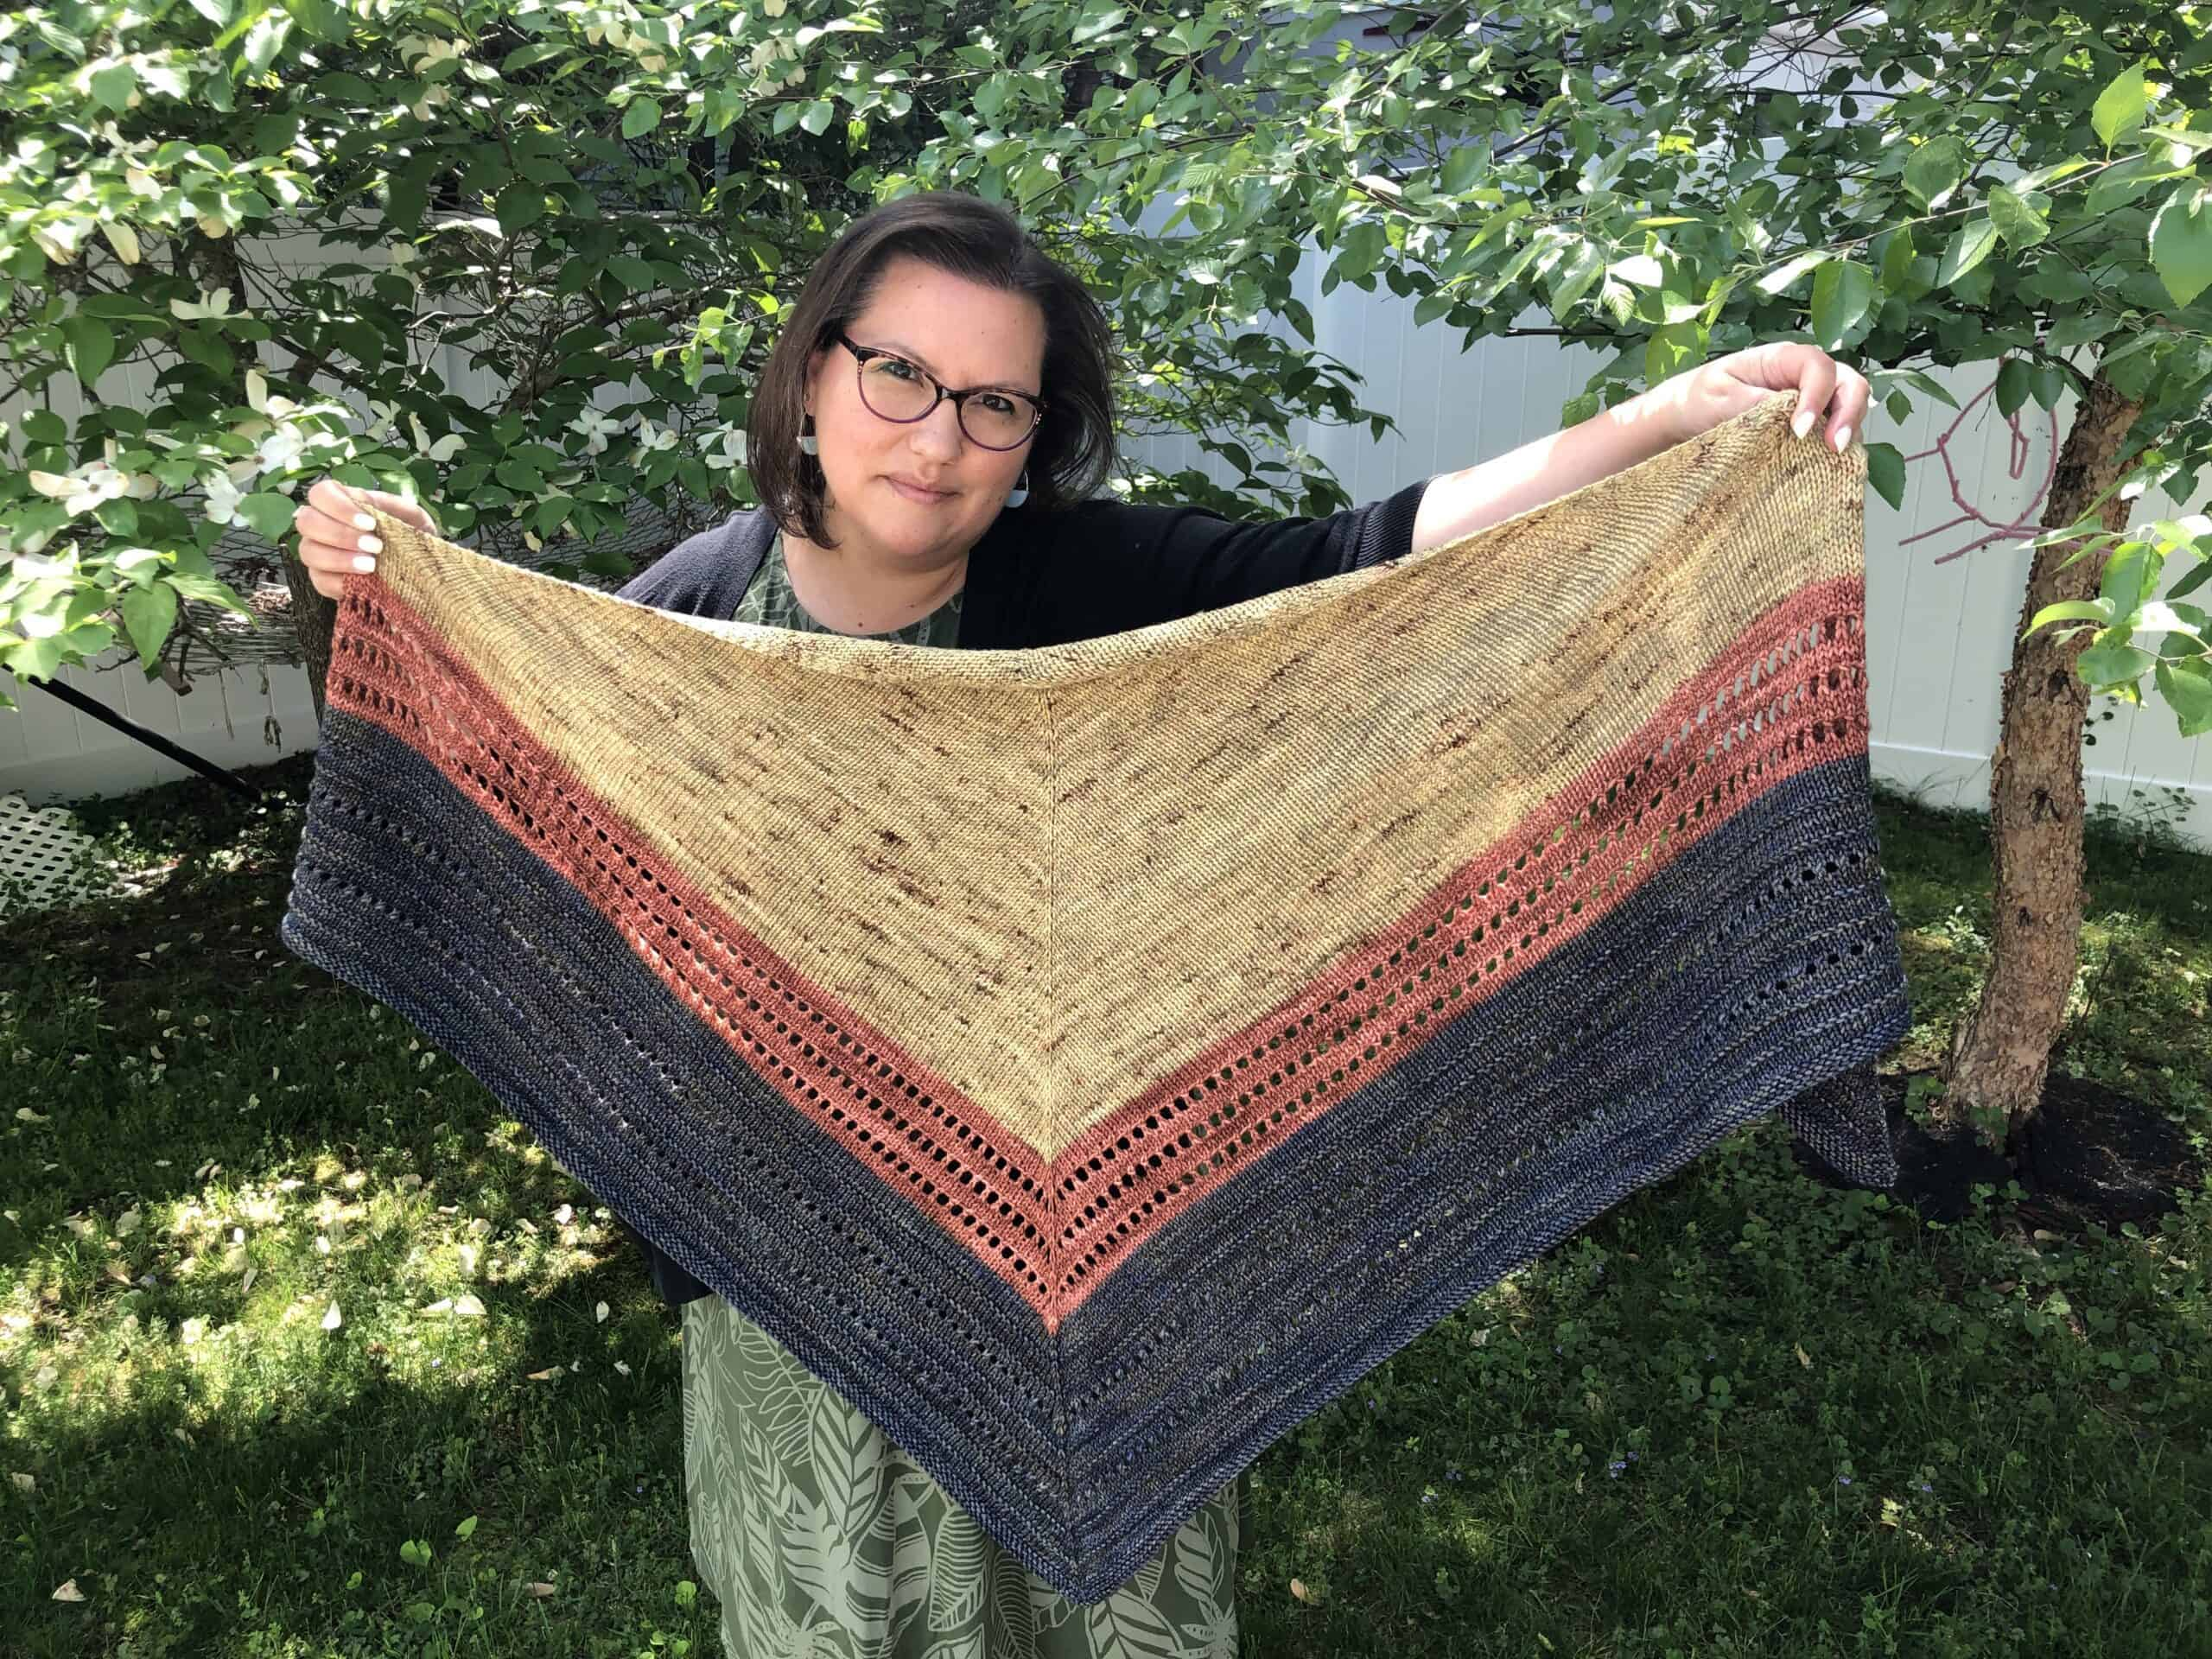 A woman holds up a beige, rust and gray triangle shawl.